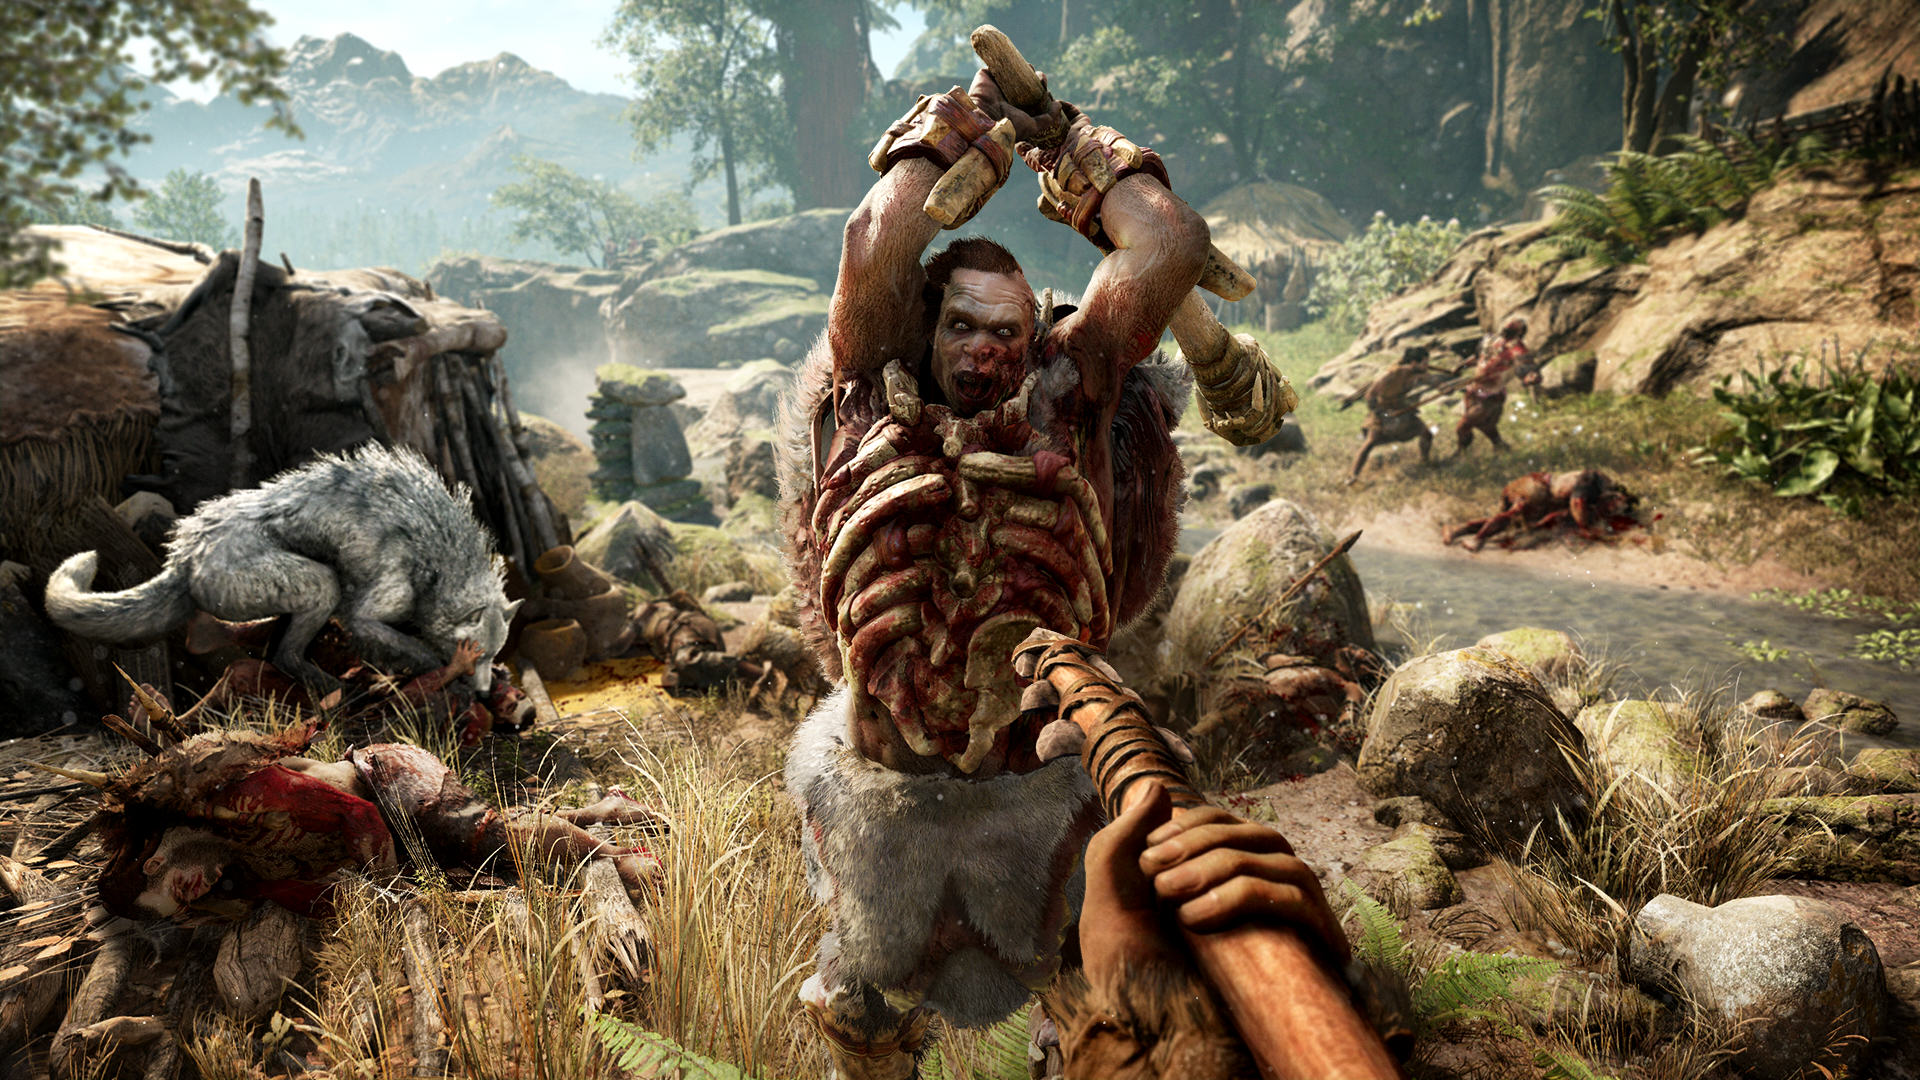 Far Cry Primal Is Shameless Pre Historic Fun, If A Little Shallow FCP 09 Udam Attack Screenshots PREVIEW PR 160126 6pm CET 1453716692